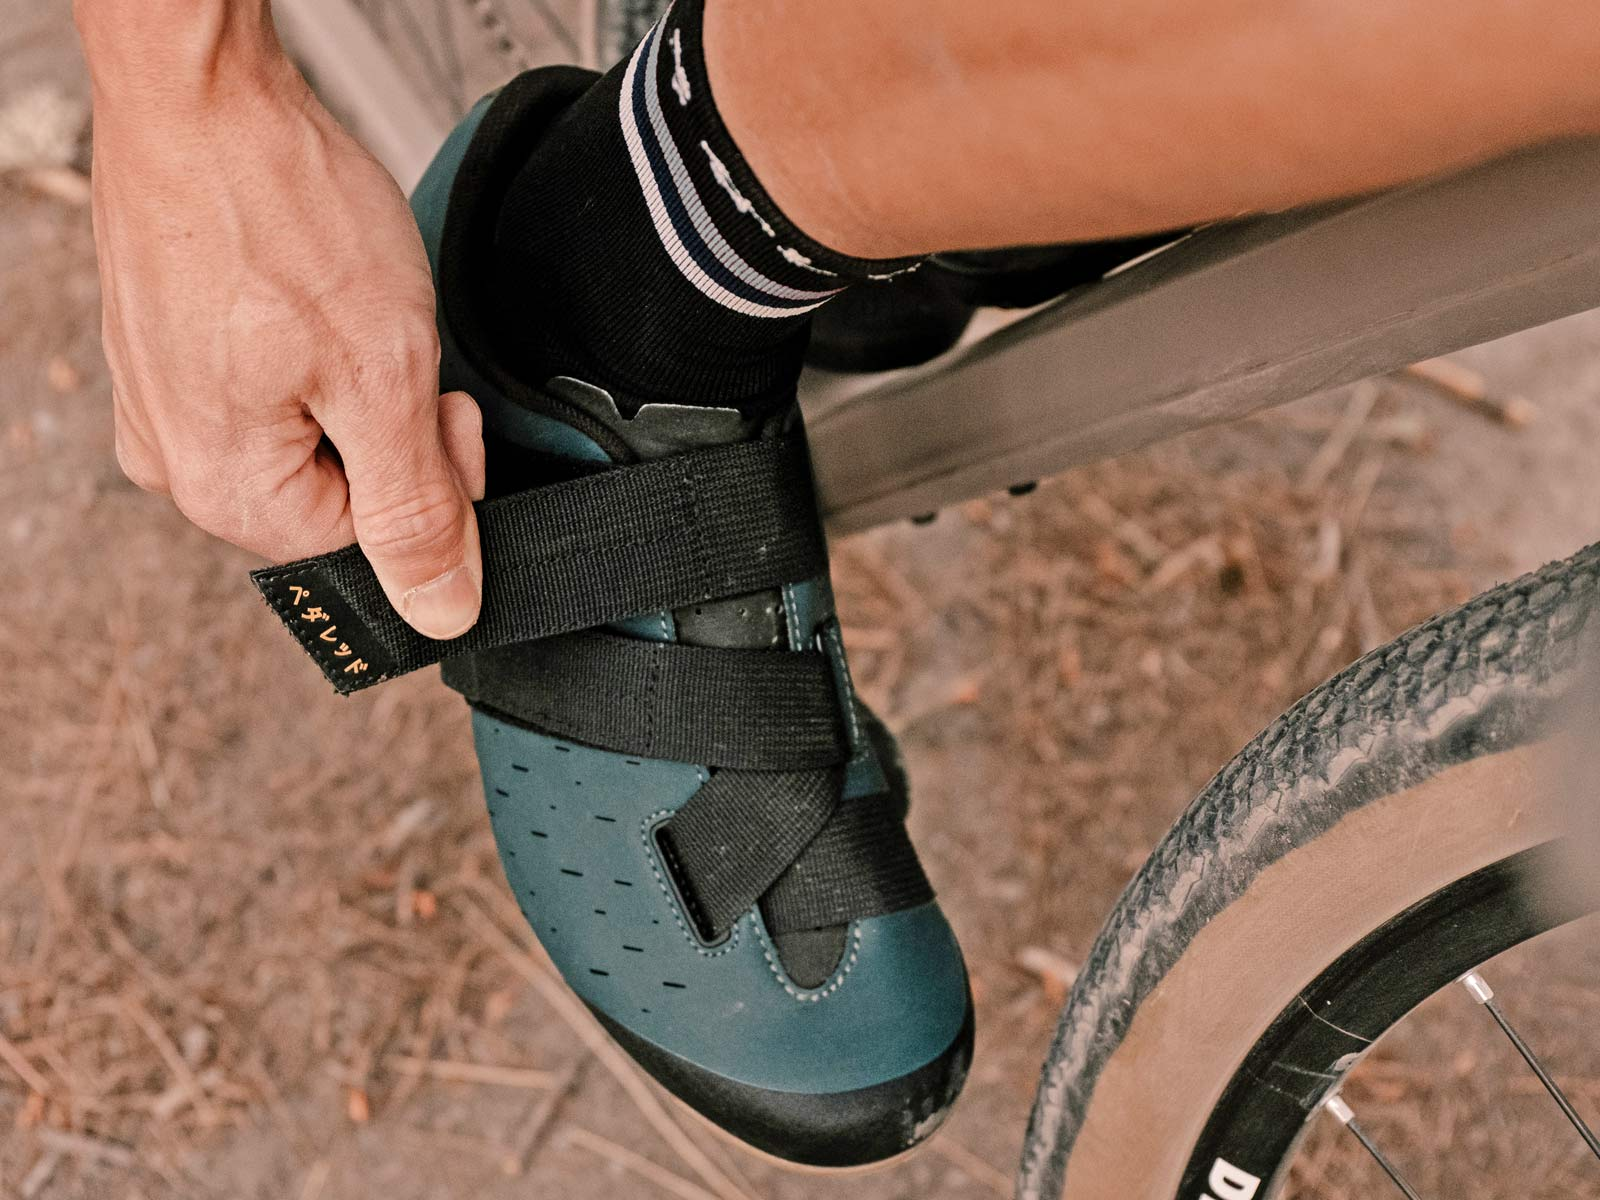 PEdALED Jary Terra gravel shoes, special edition Fizik Terra Powerstrap X4 gravel bike shoes